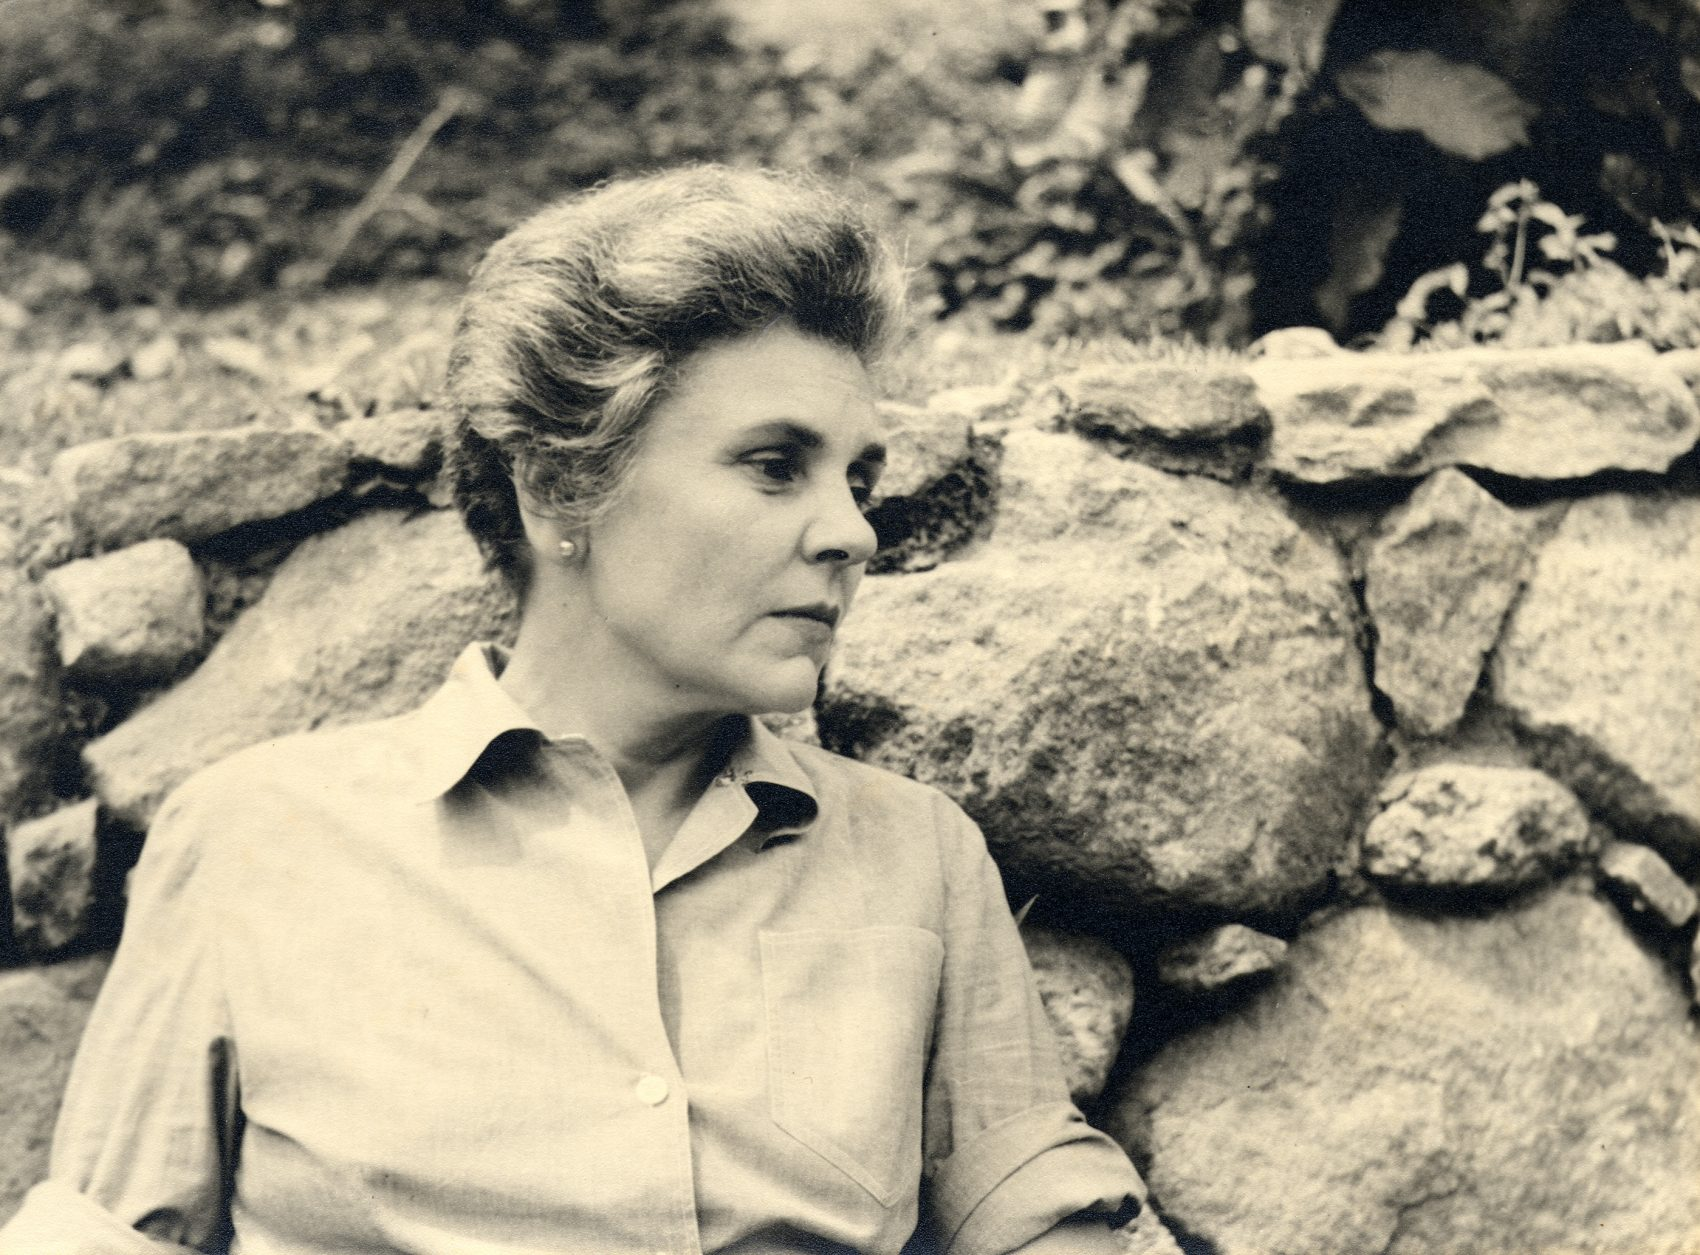 Poet Elizabeth Bishop in Brazil in 1955. (Courtesy Houghton Mifflin)